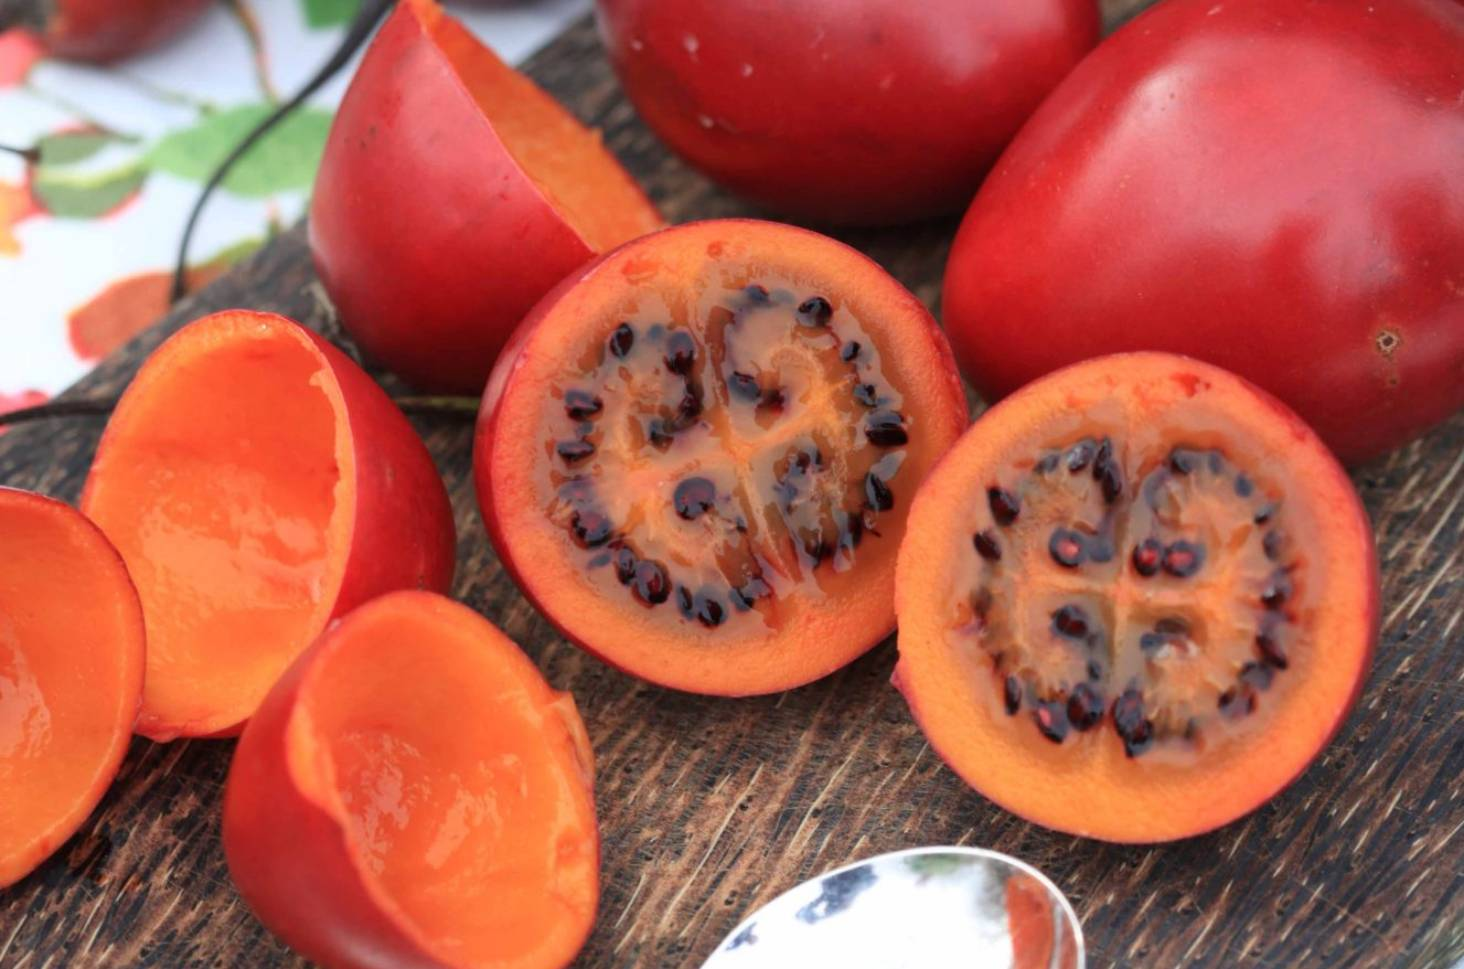 How To Grow Tamarillos House Wiring New Zealand